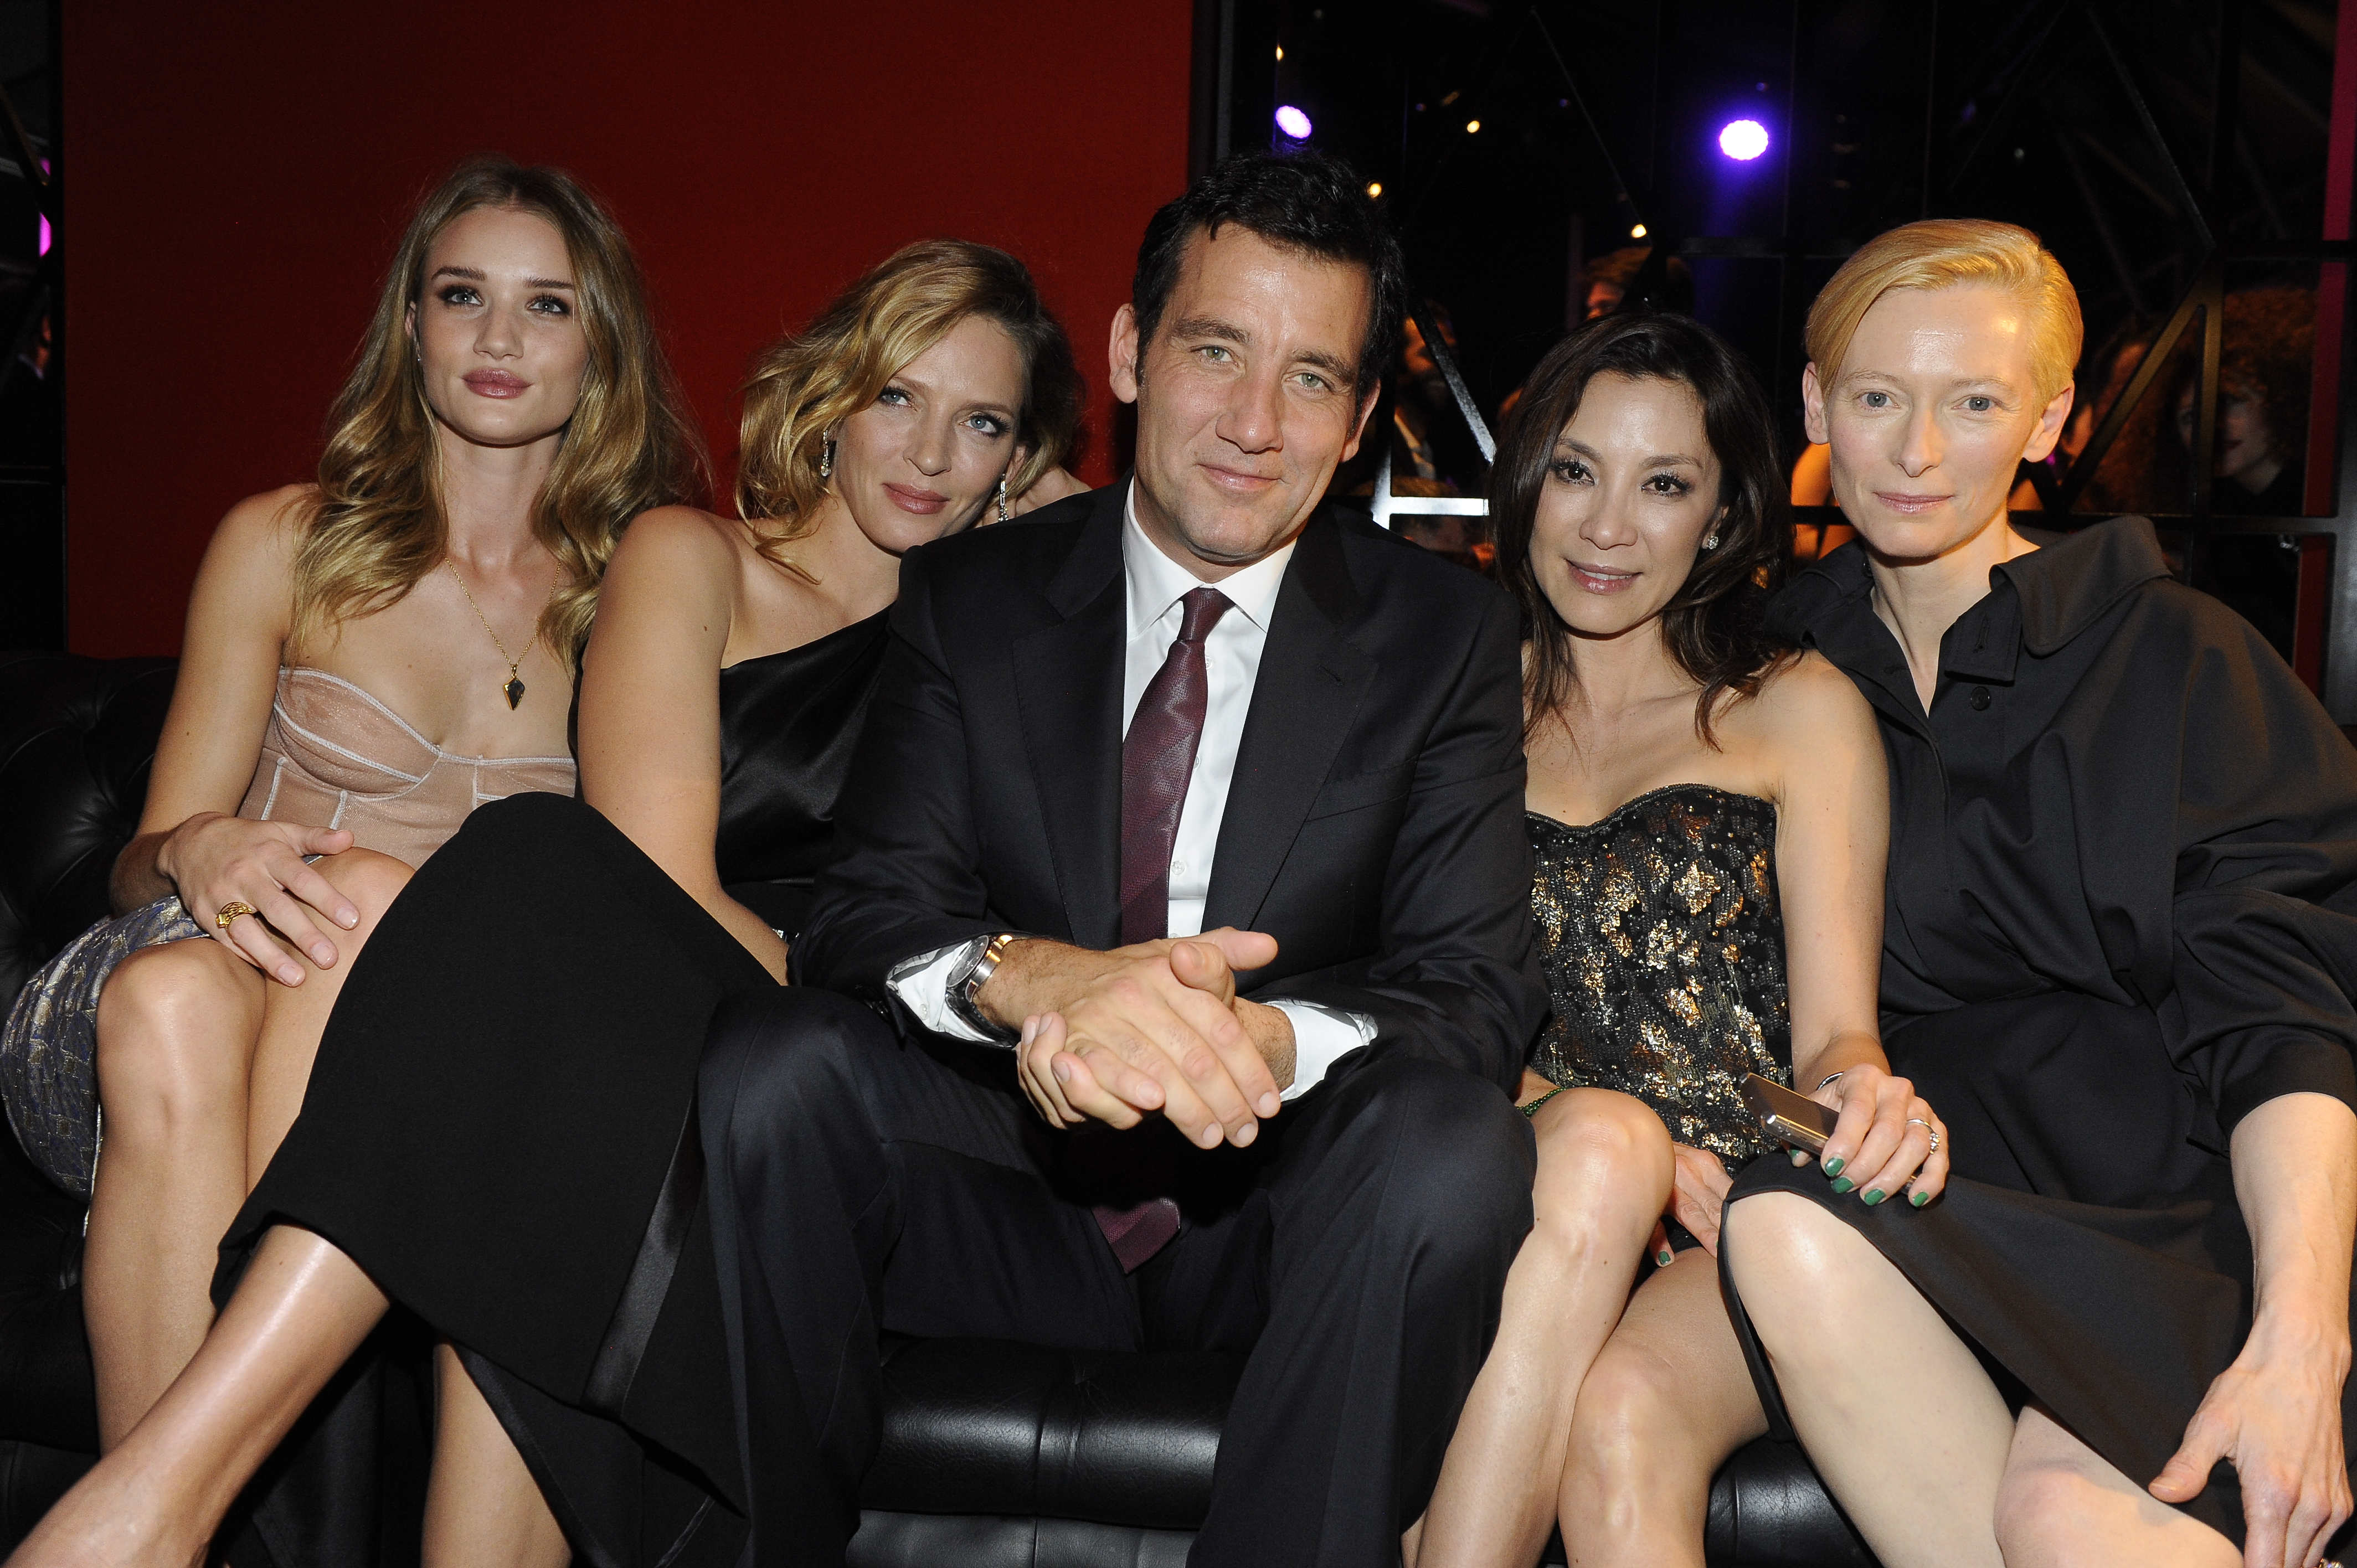 R.Huntington Whiteley Uma Thurma Clive Owen Michelle Yeoh Tilda Swinton VERTU illumina Milano